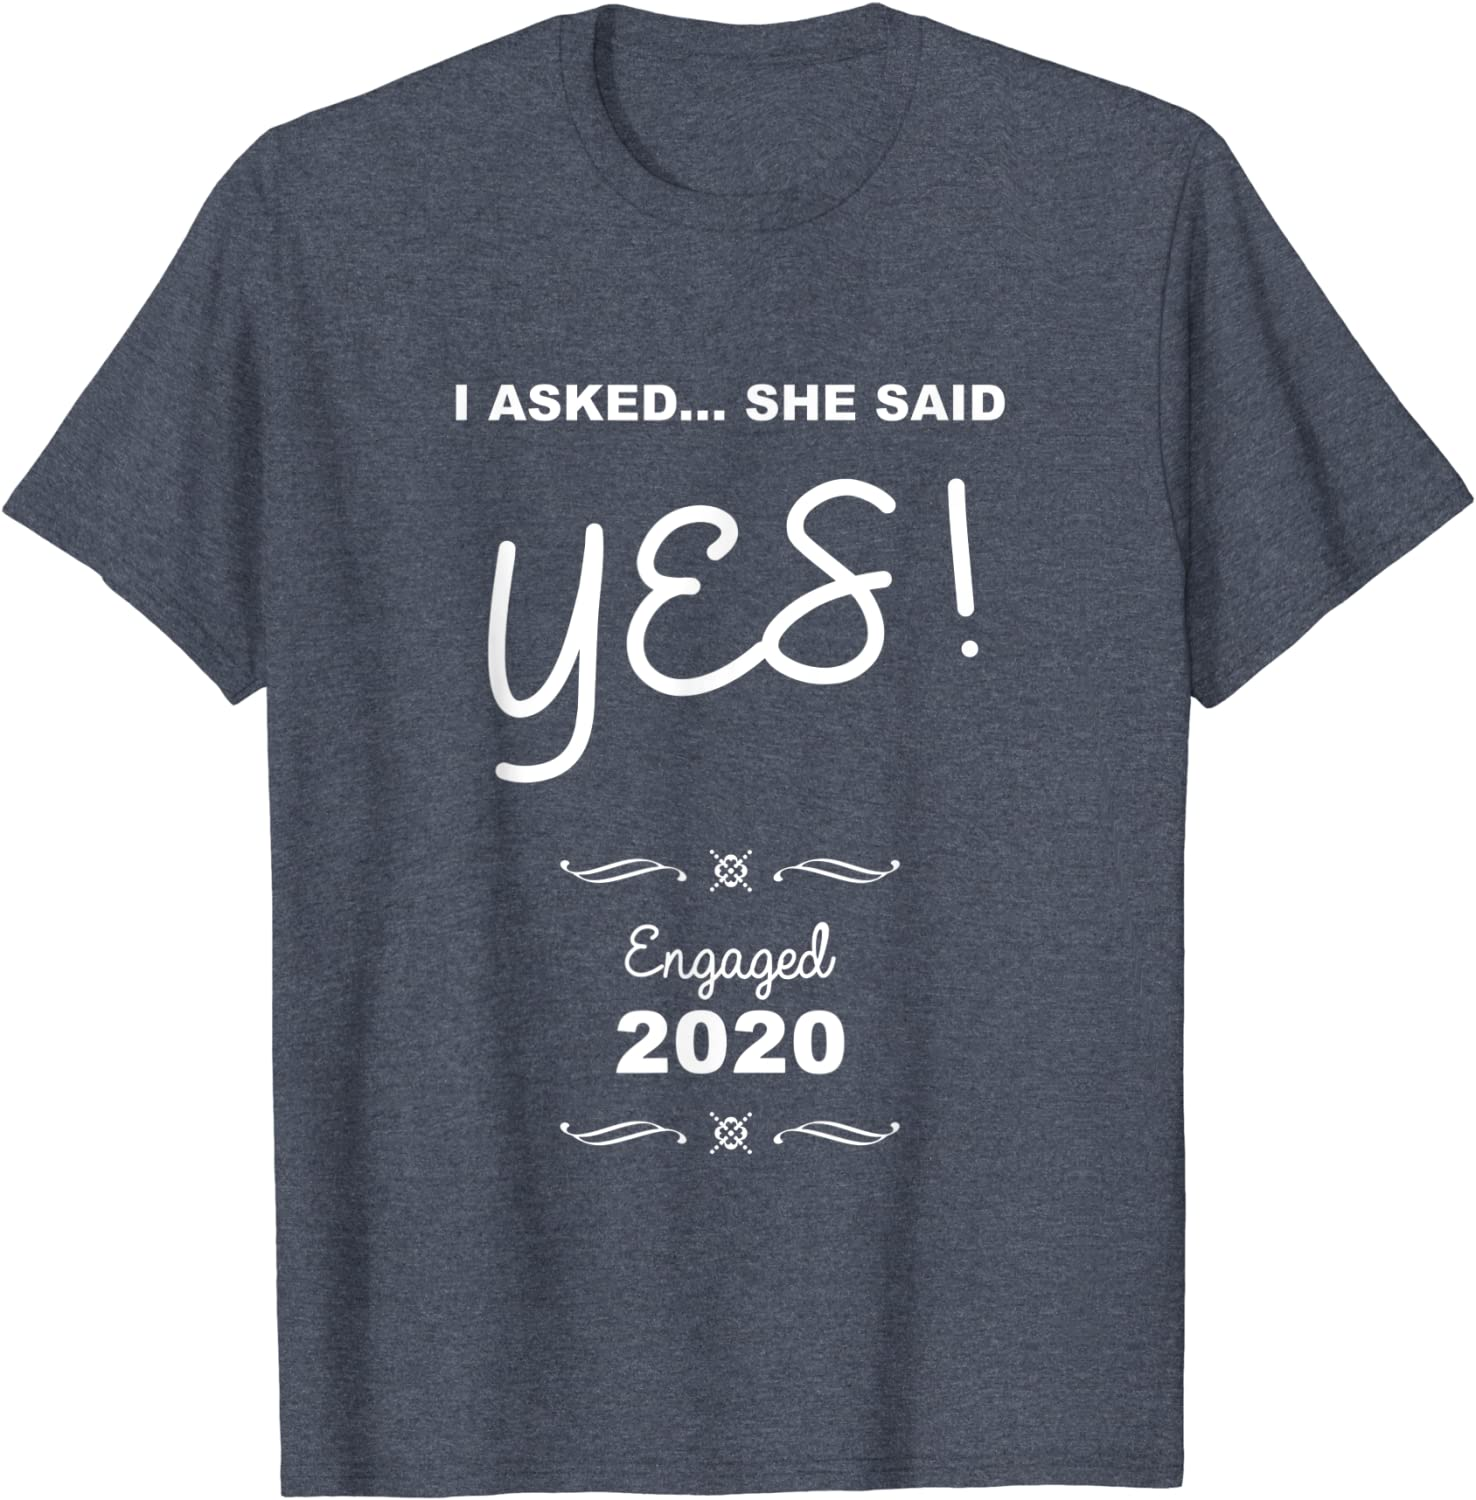 Matching Couple Shirts Mr Mrs Shirts She Said Yes Shirt Funny Bachelorette Party Shirts Engagement Announcement He Asked Shirt